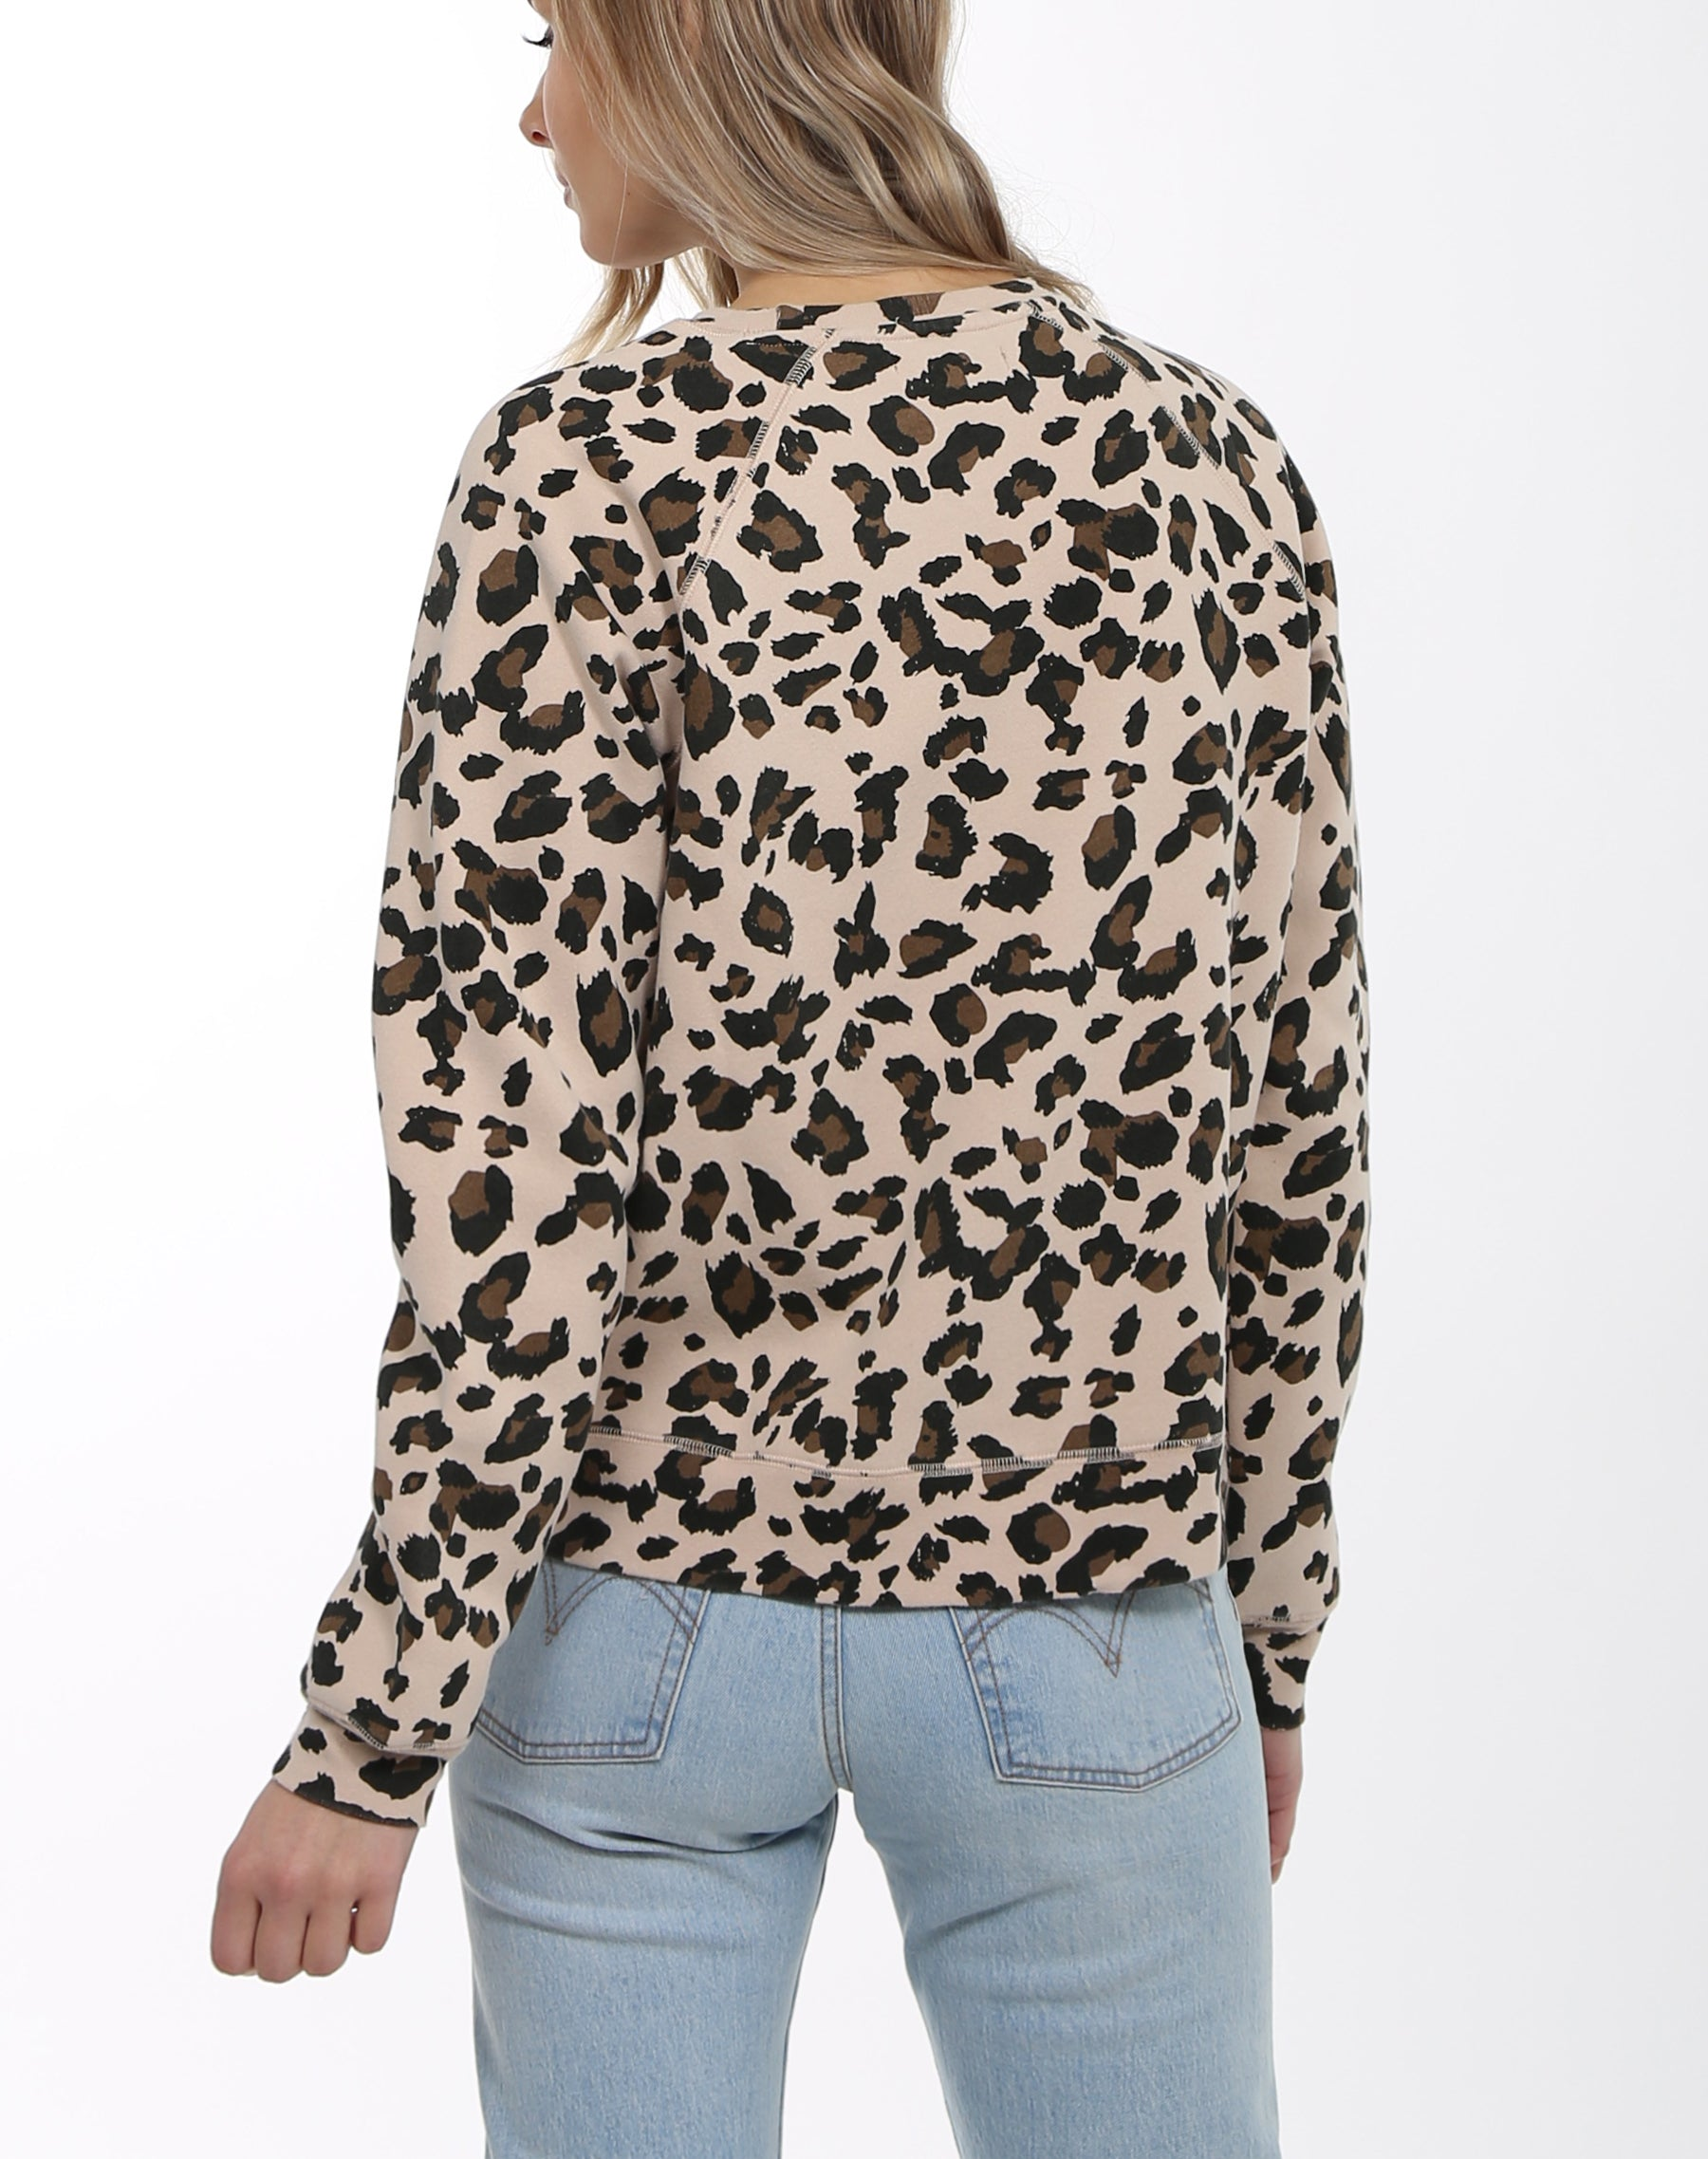 Photo of the back of the Redhead middle sister crew neck sweatshirt in leopard print by Brunette the Label.